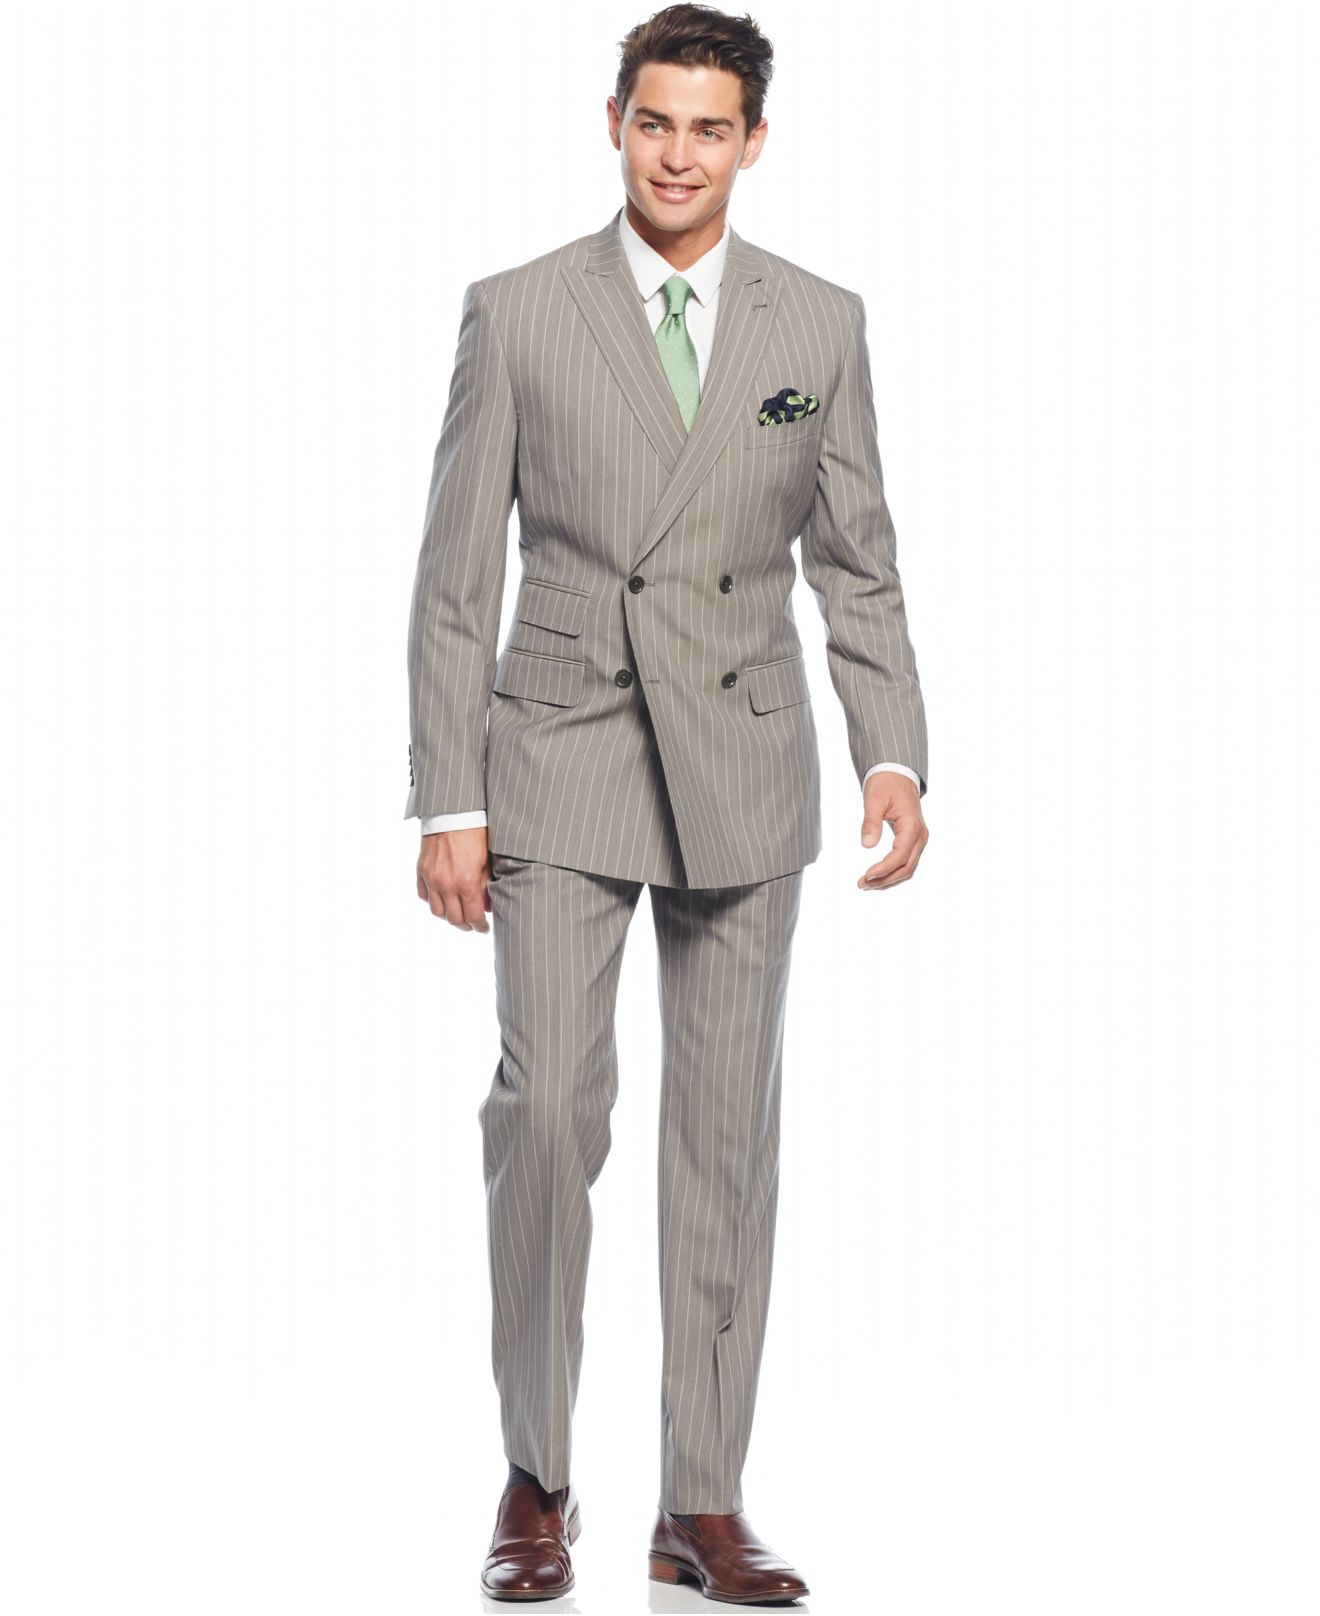 English laundry Peak Lapel Slim-fit Double Breasted Suit in Gray